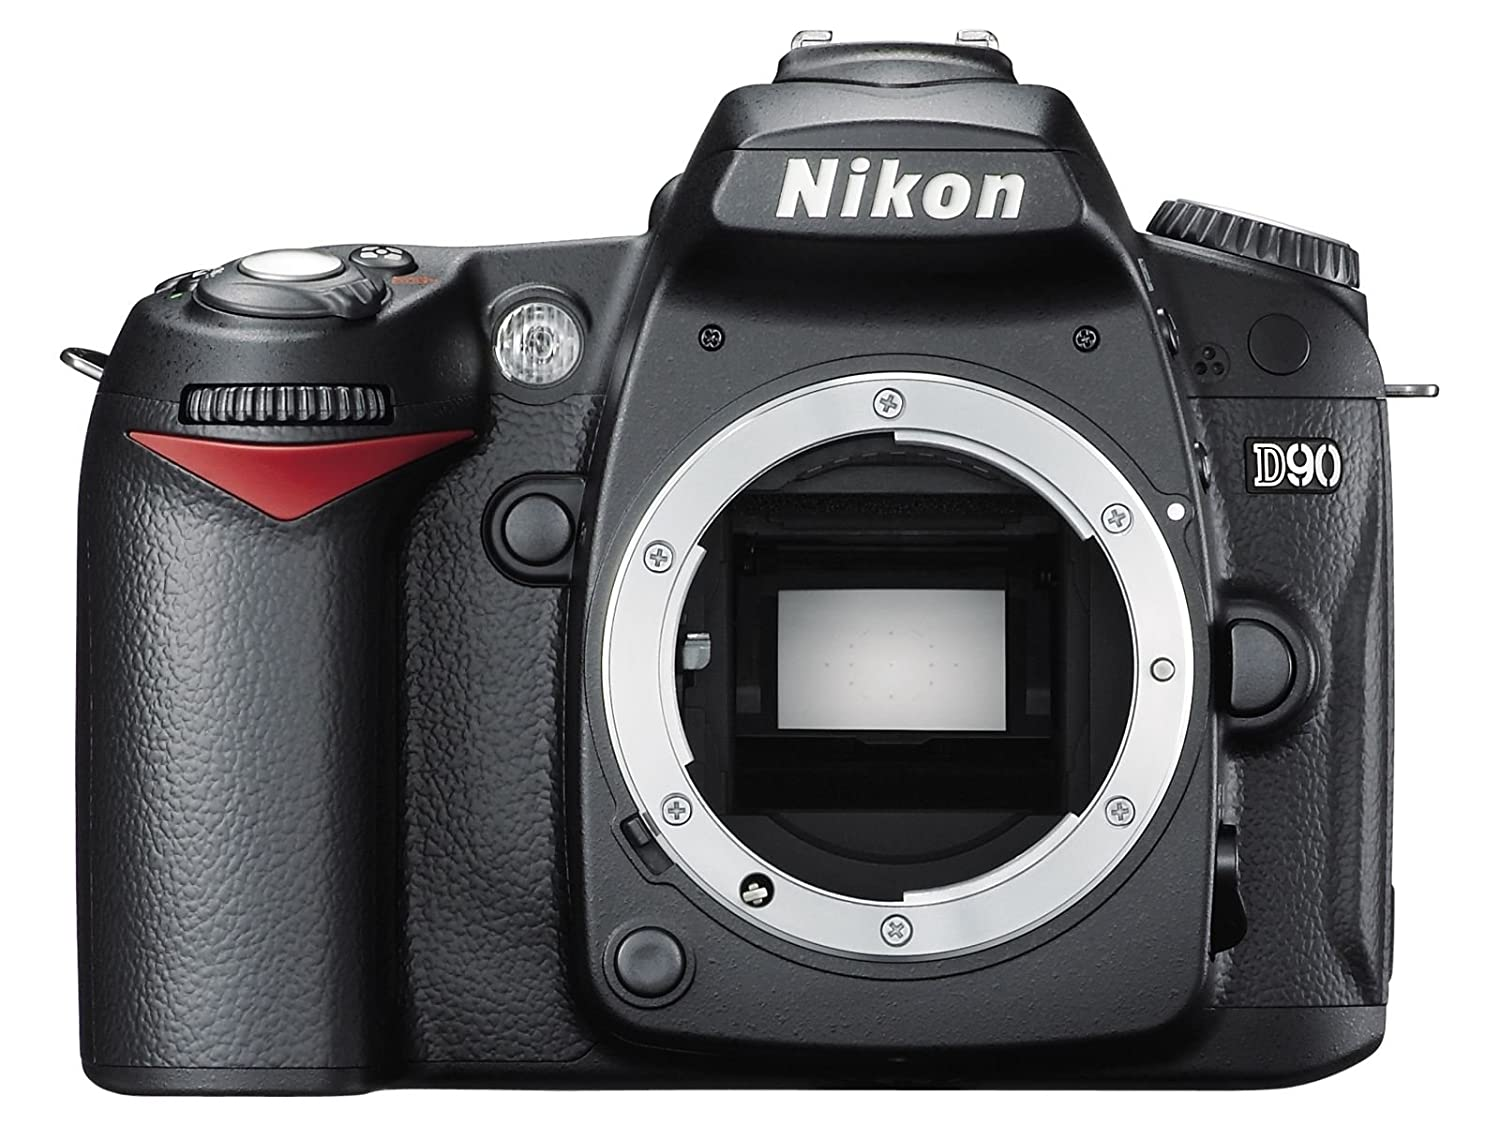 Test Driving Nikon D90 Video With 10 >> Nikon D90 Digital Slr Camera Body Only 3 Inch Lcd Amazon Co Uk